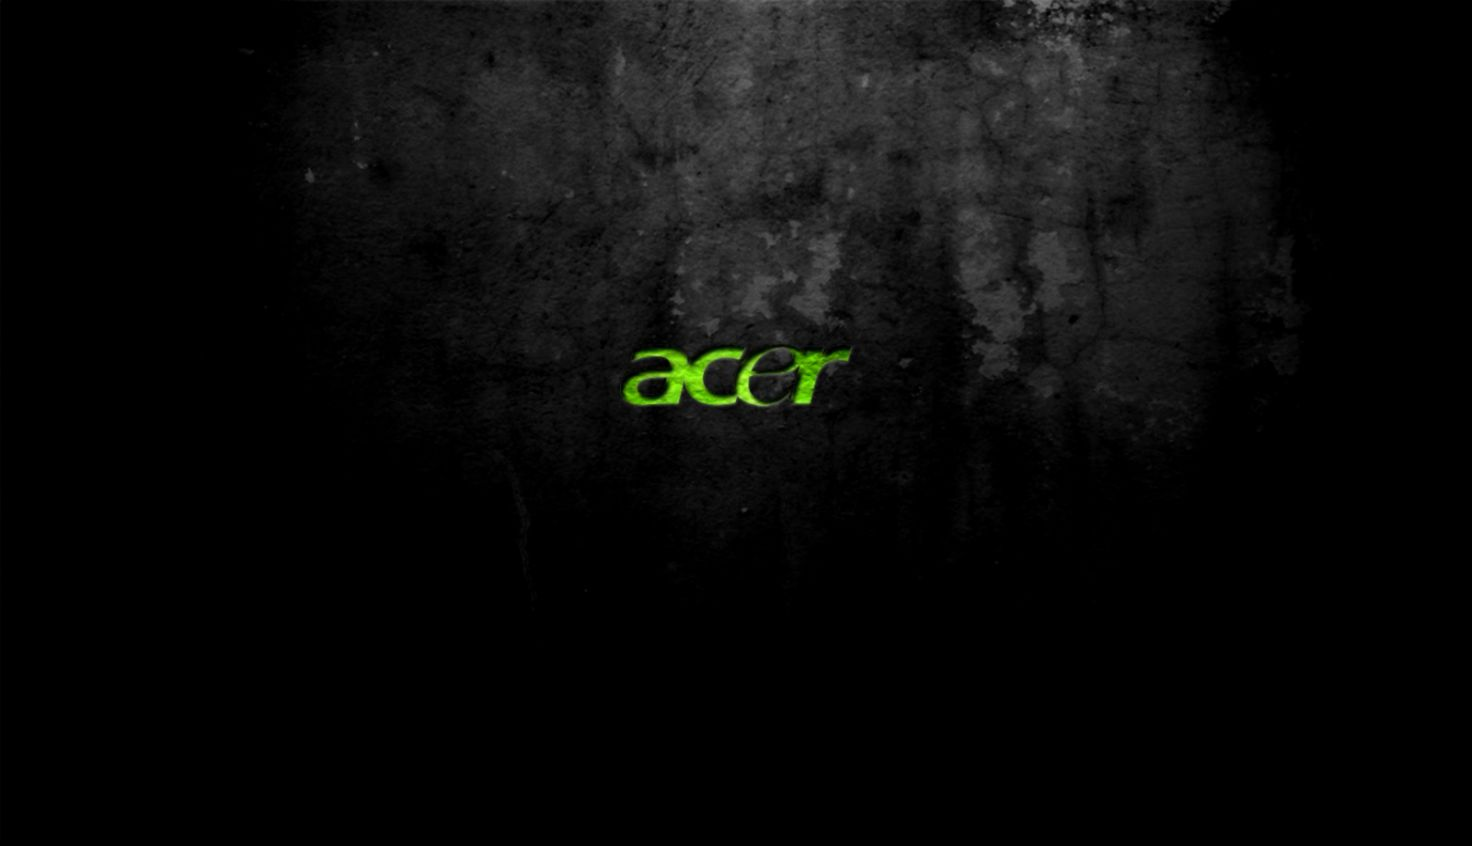 acer logo wallpaper background high definitions wallpapers